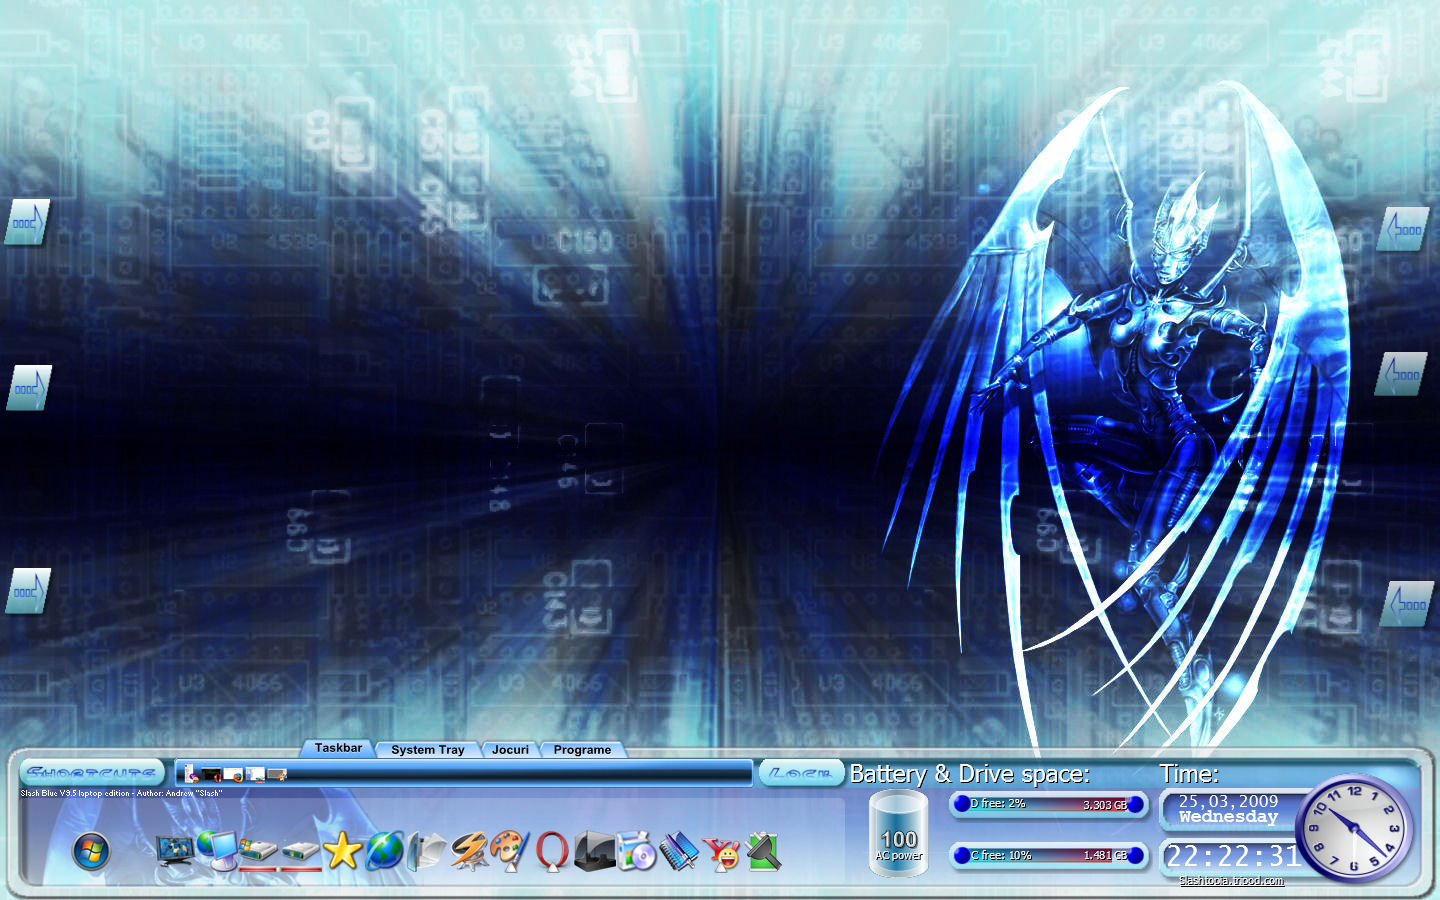 Title: Slash Blue V9.5 laptop edition